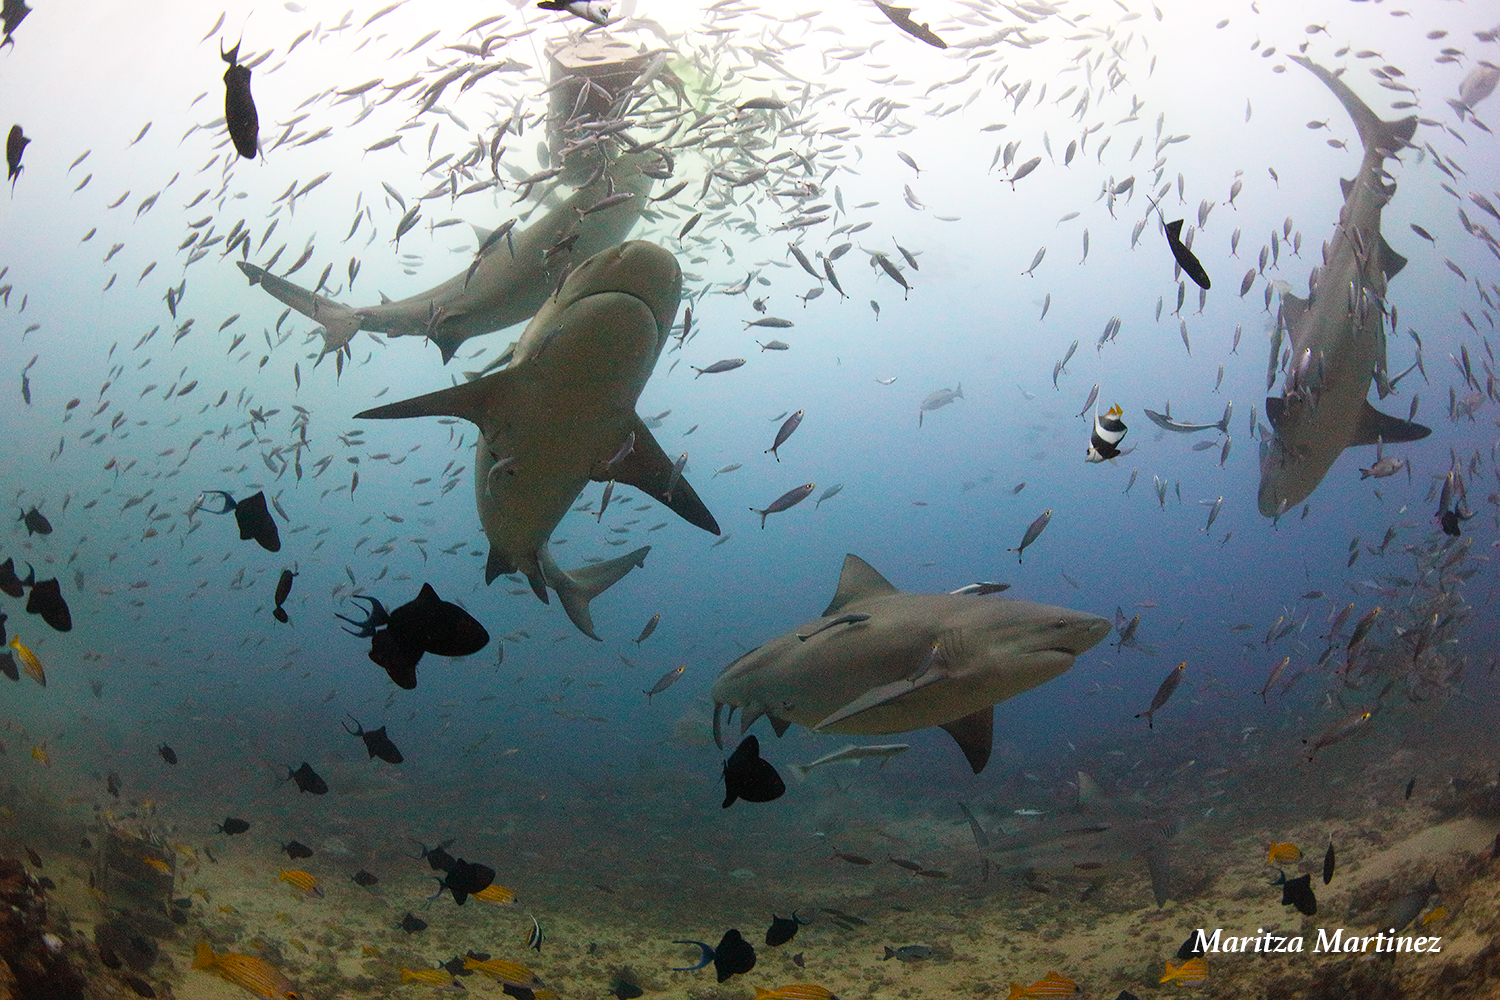 We had over 30 bull sharks on our dive.